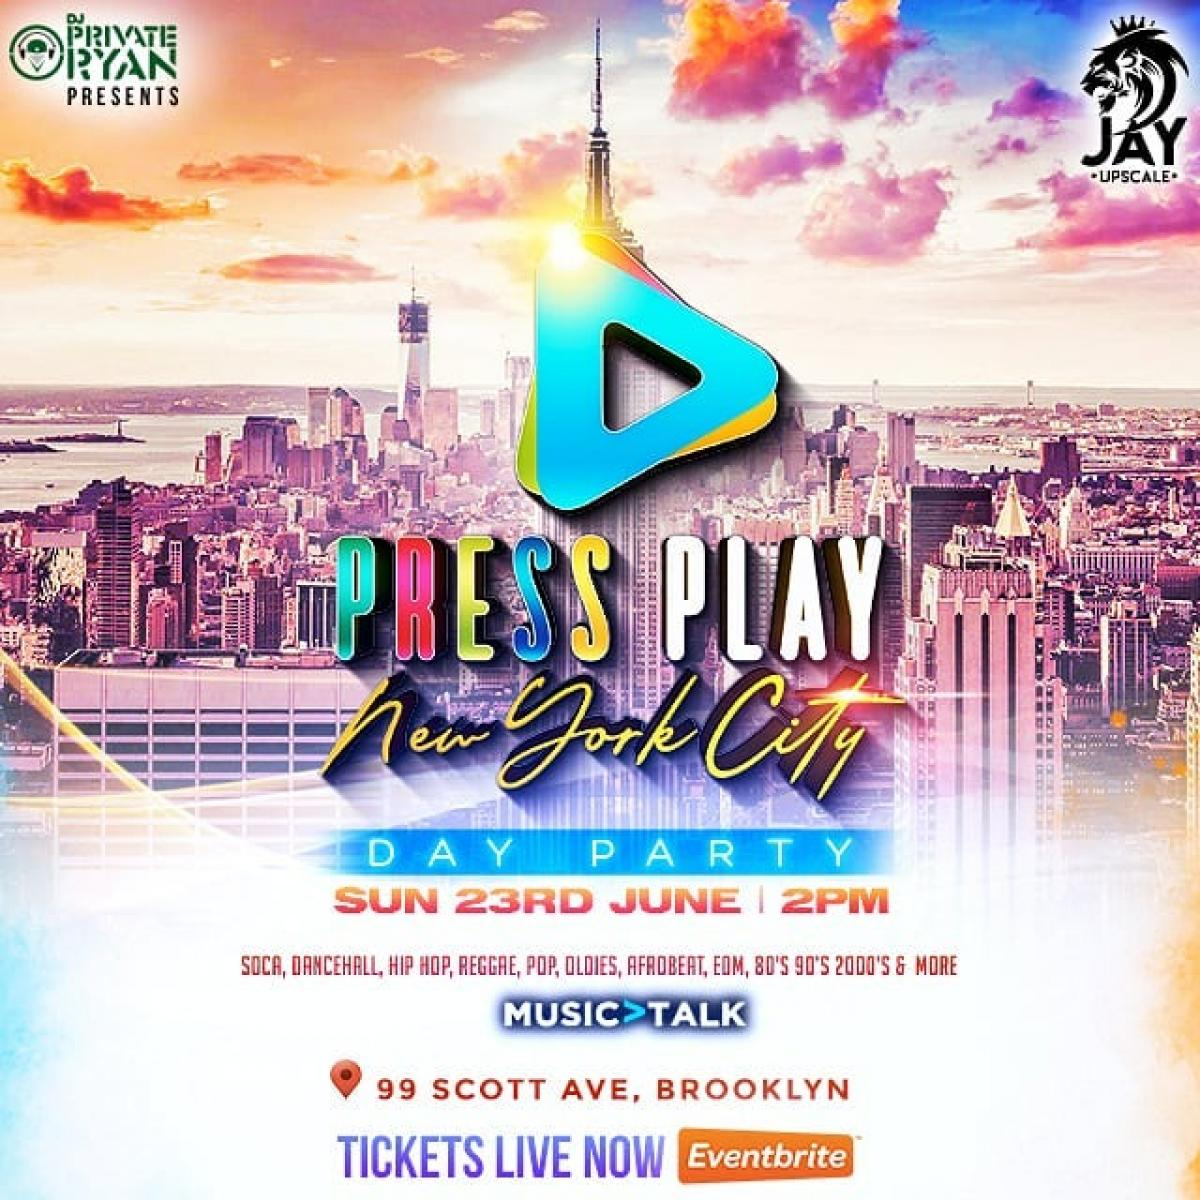 PRESS PLAY ▶ flyer or graphic.